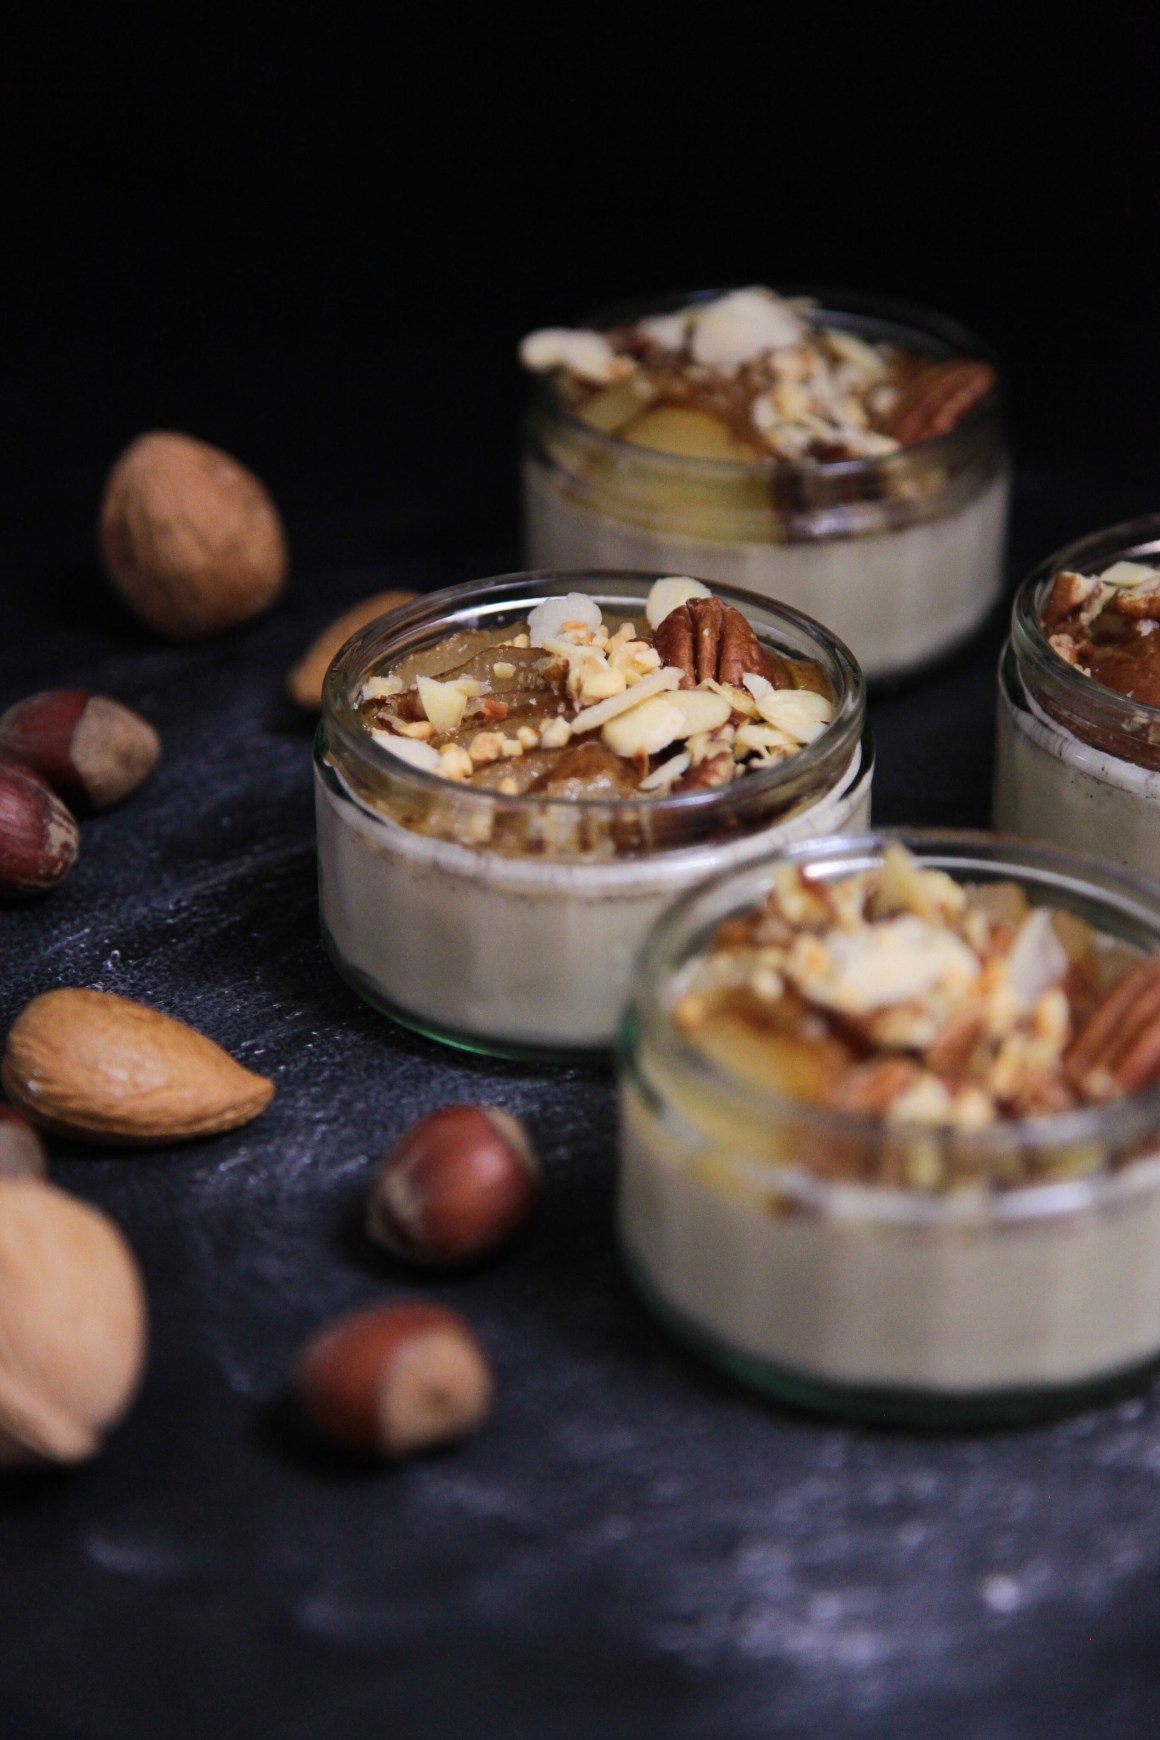 Pumpkin Spice Panna Cotta with Poached Pear and Nuts